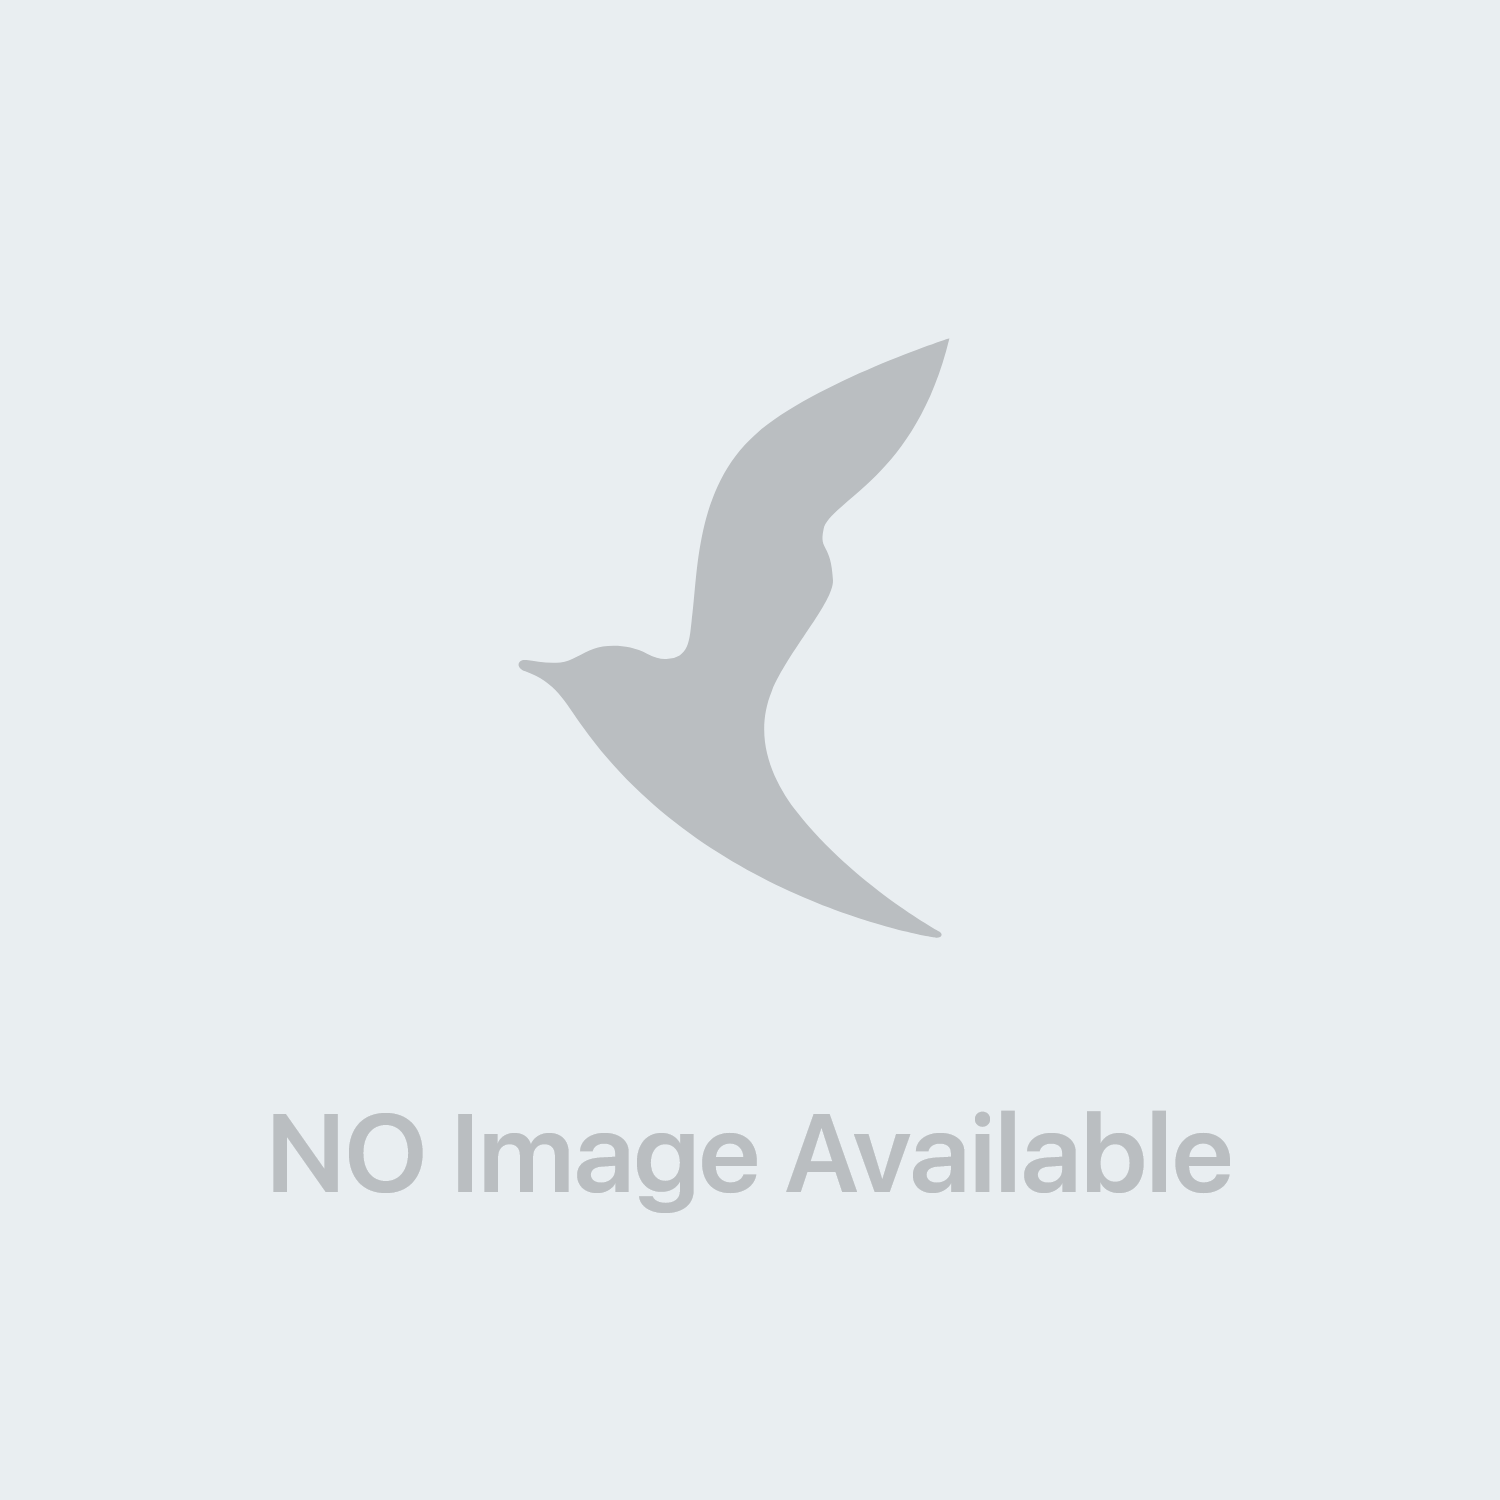 Be-Total Plus Scioppo Limone Integratore Vitaminico 100 Ml